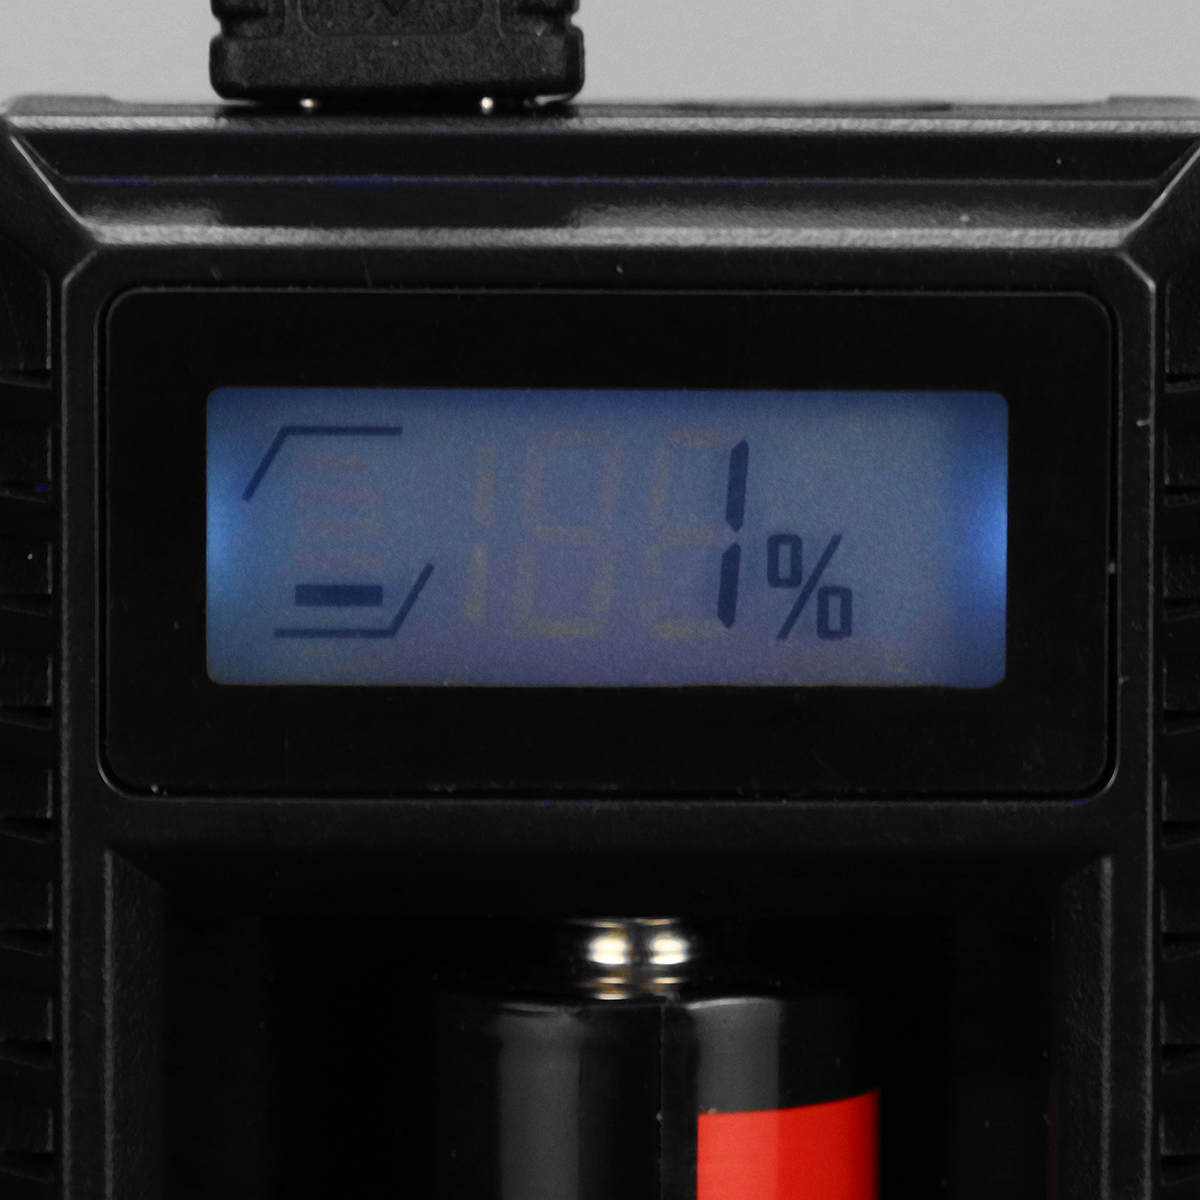 Nitecore UM10 Intelligent LCD Charger 18650 16340 18350 USB Vape Battery Charger